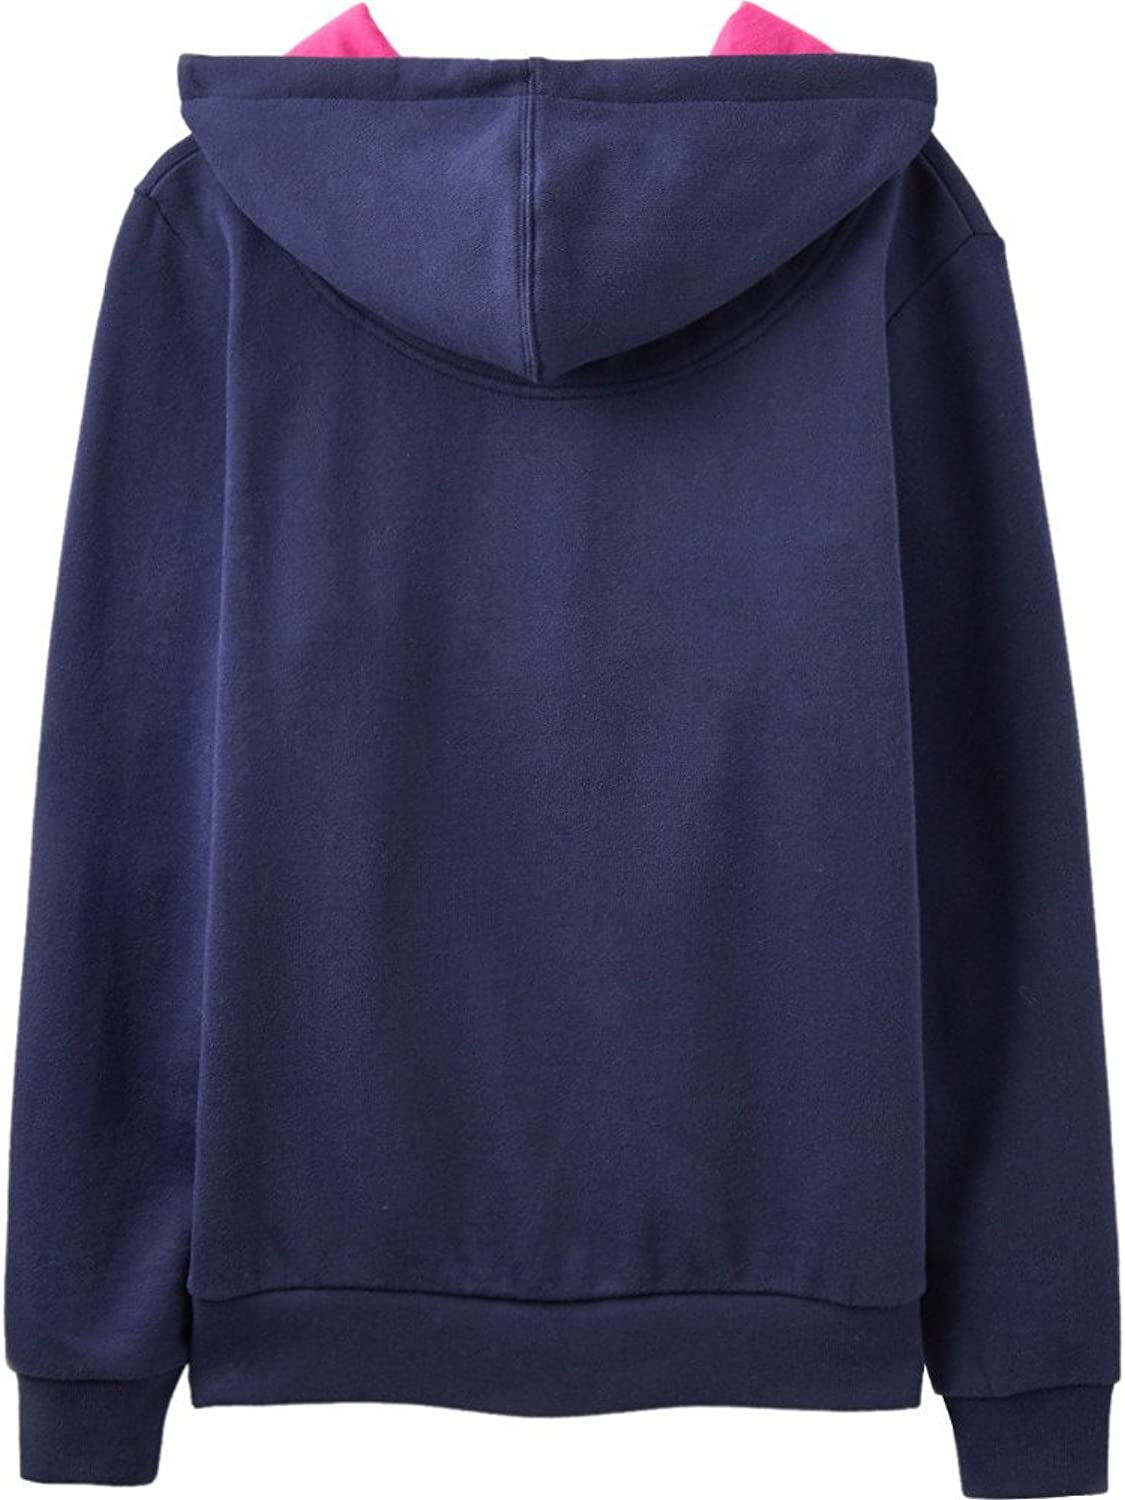 Joules Dovedale Ladies Sweatshirt (V) 12 French Navy